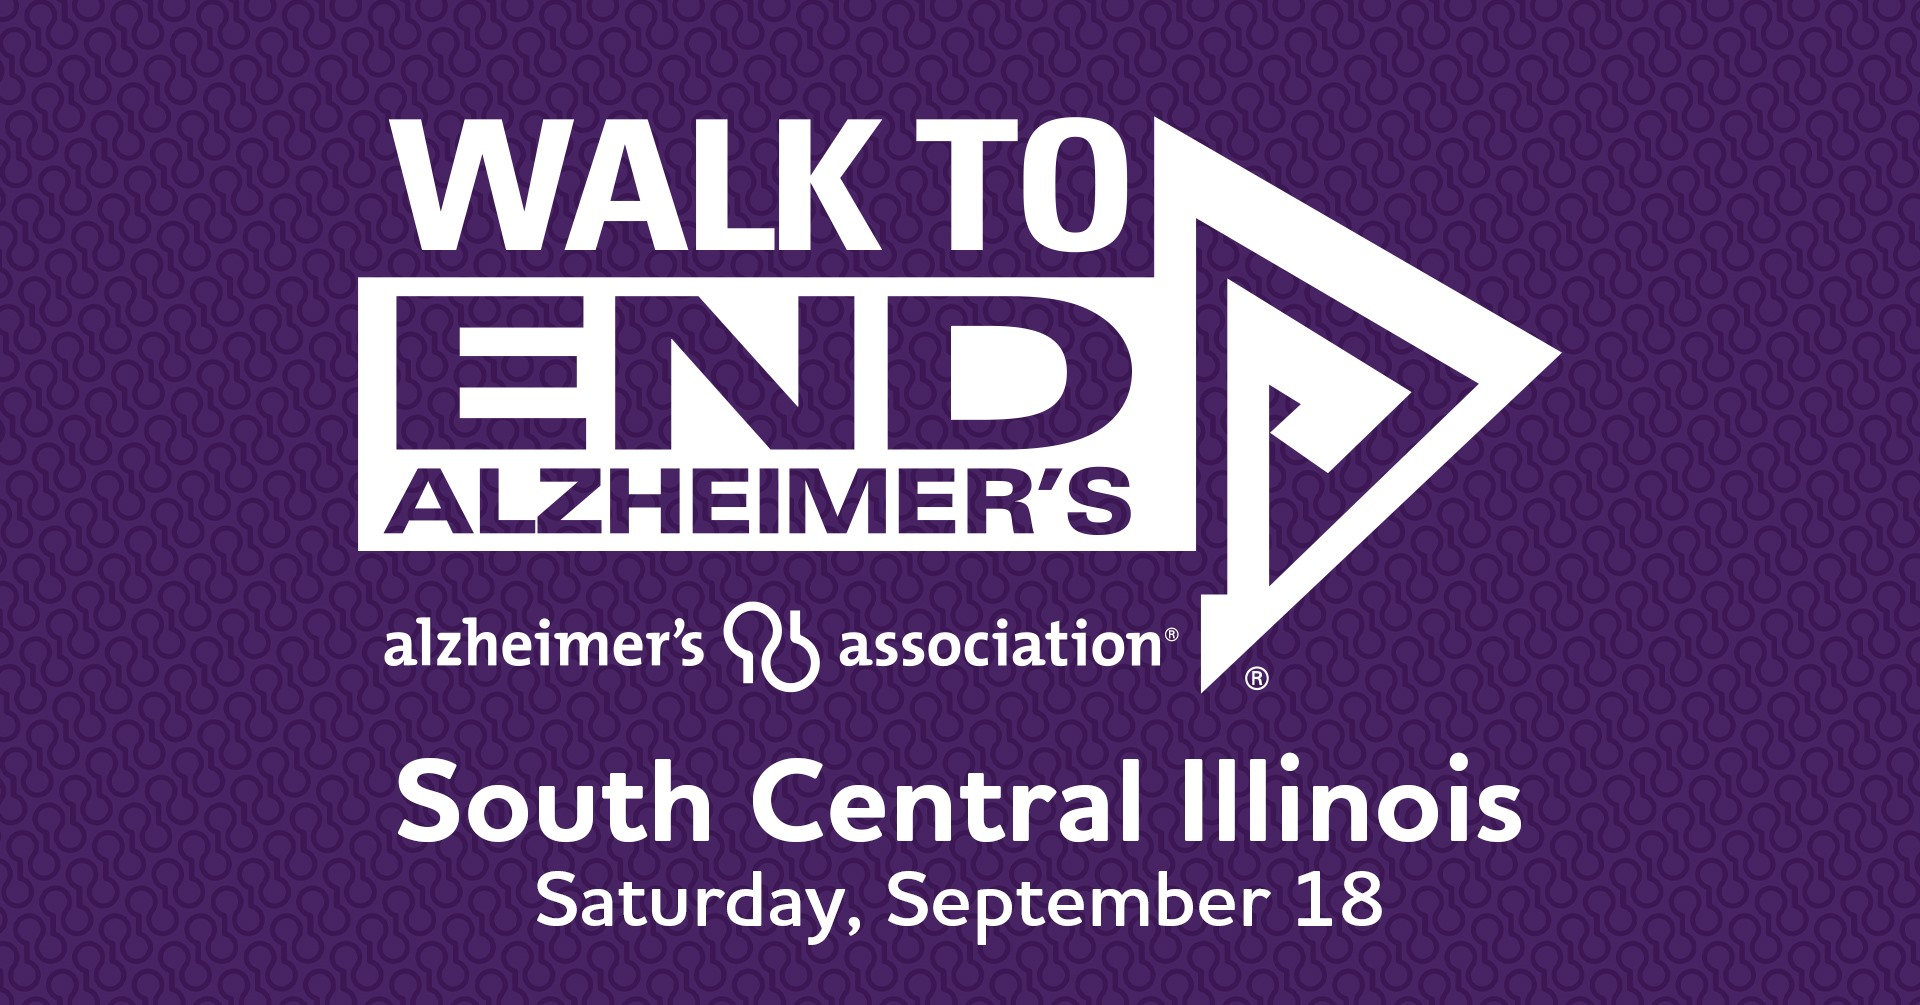 Walk to End Alzheimer's set for Saturday at Kaskaskia College